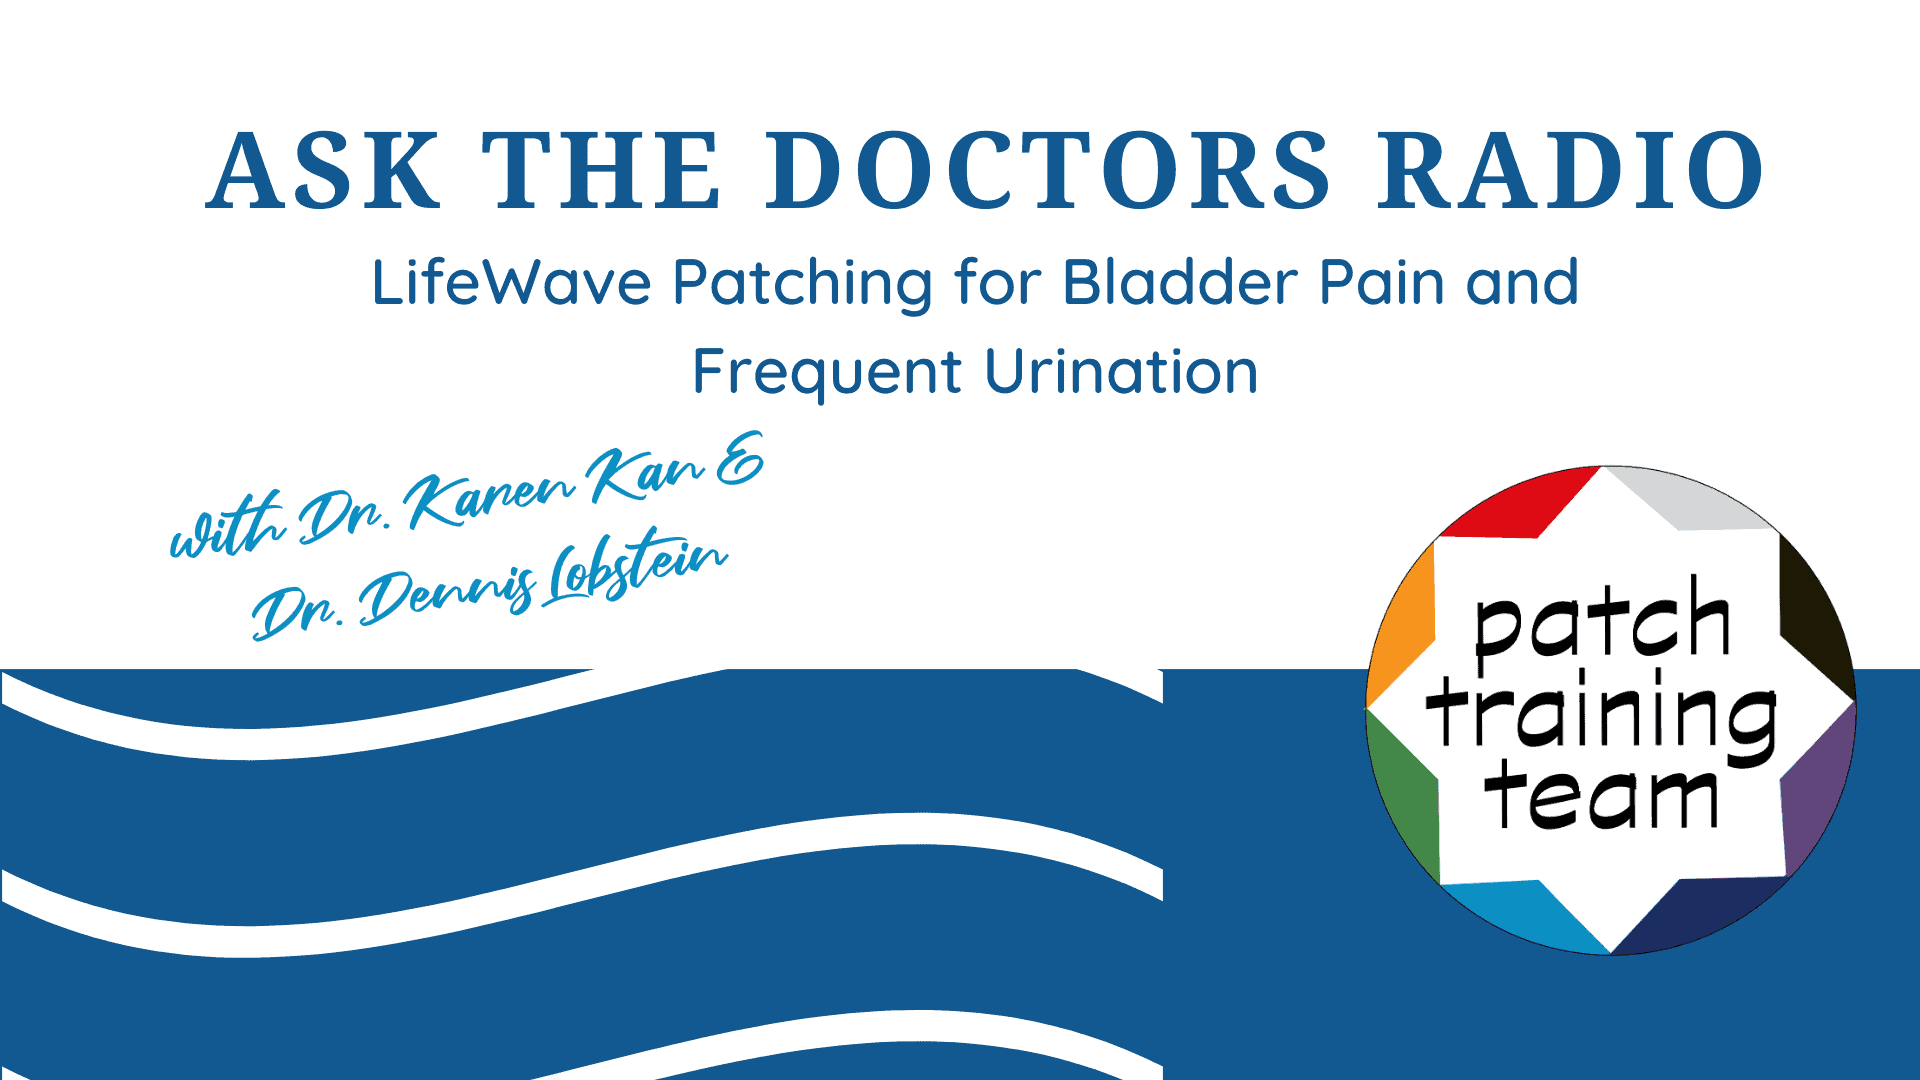 ask-the-doctors-radio-lifewave-patching-for-bladder-pain-and-frequent-urination-with-dr-karen-kan-and-dr-dennis-lobstein-patch-training-team